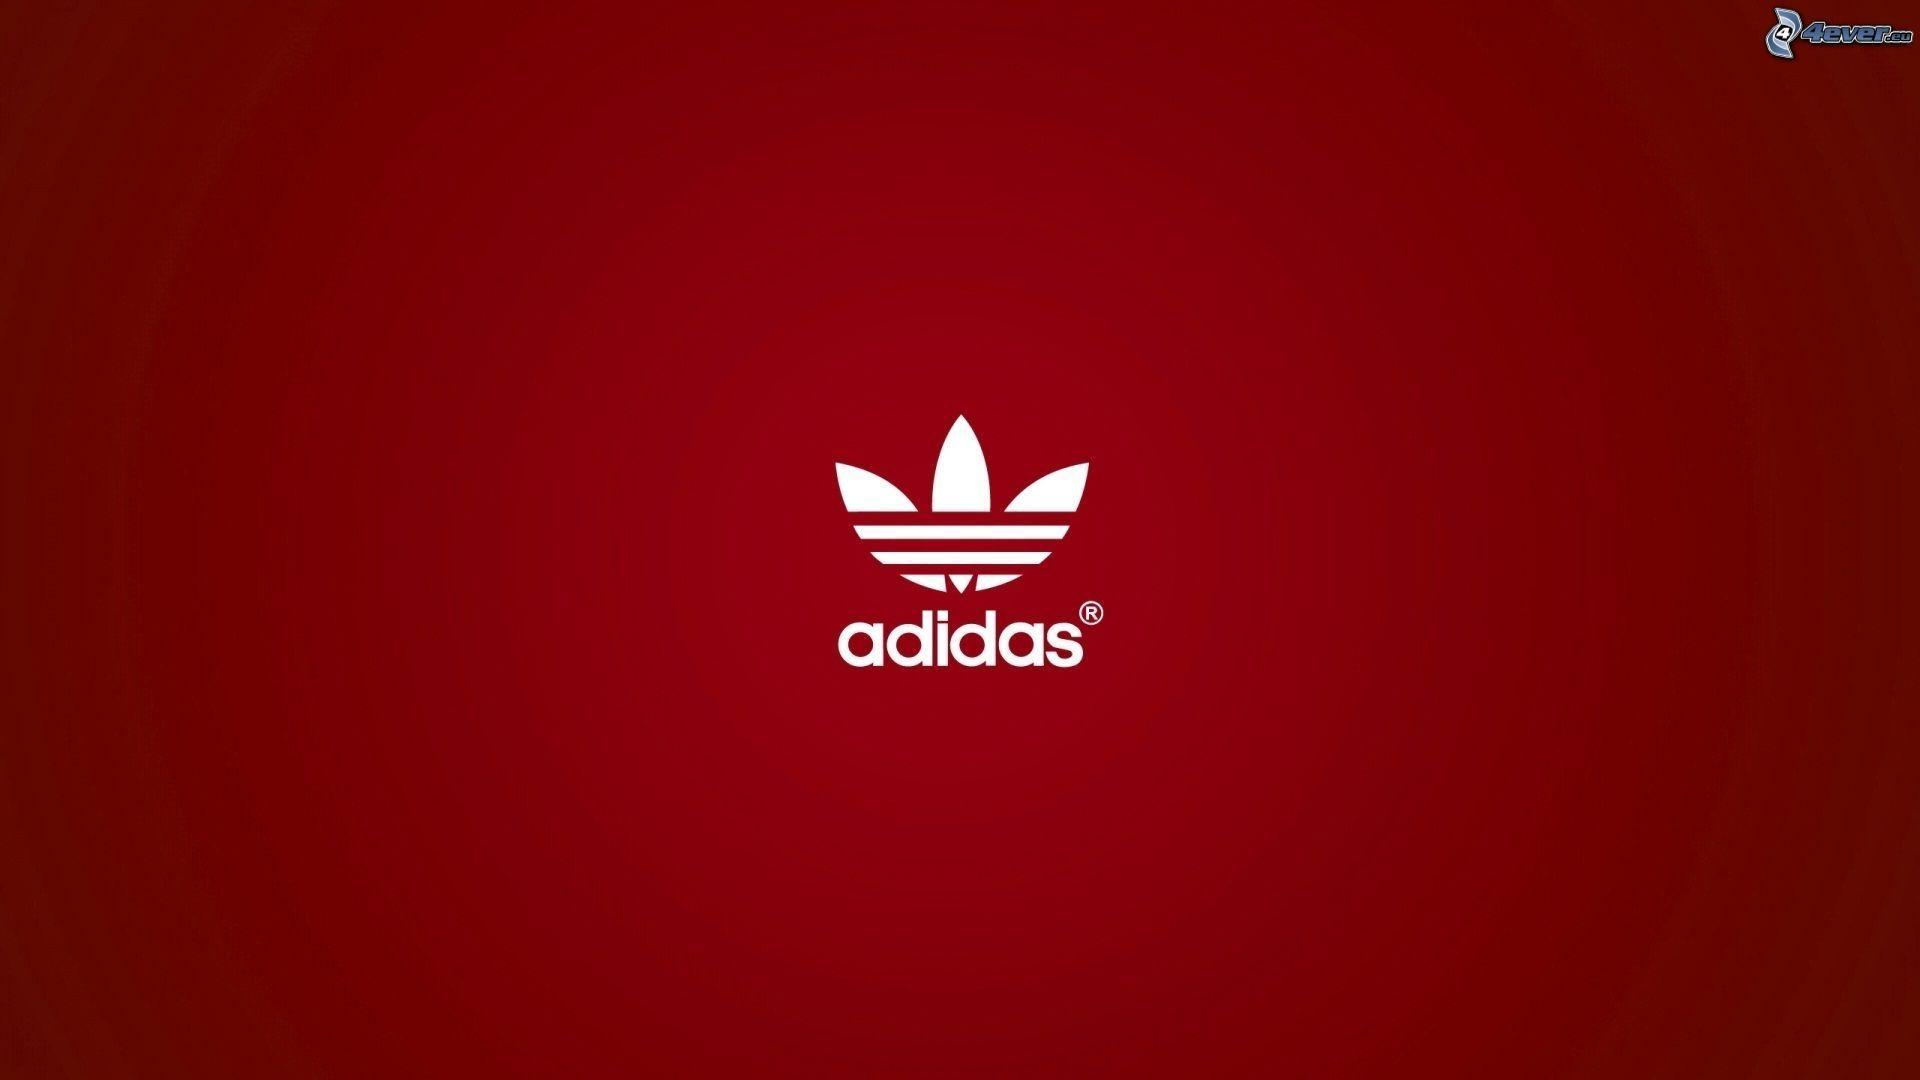 Wallpapers Adidas HD Red Wallpaper Cave